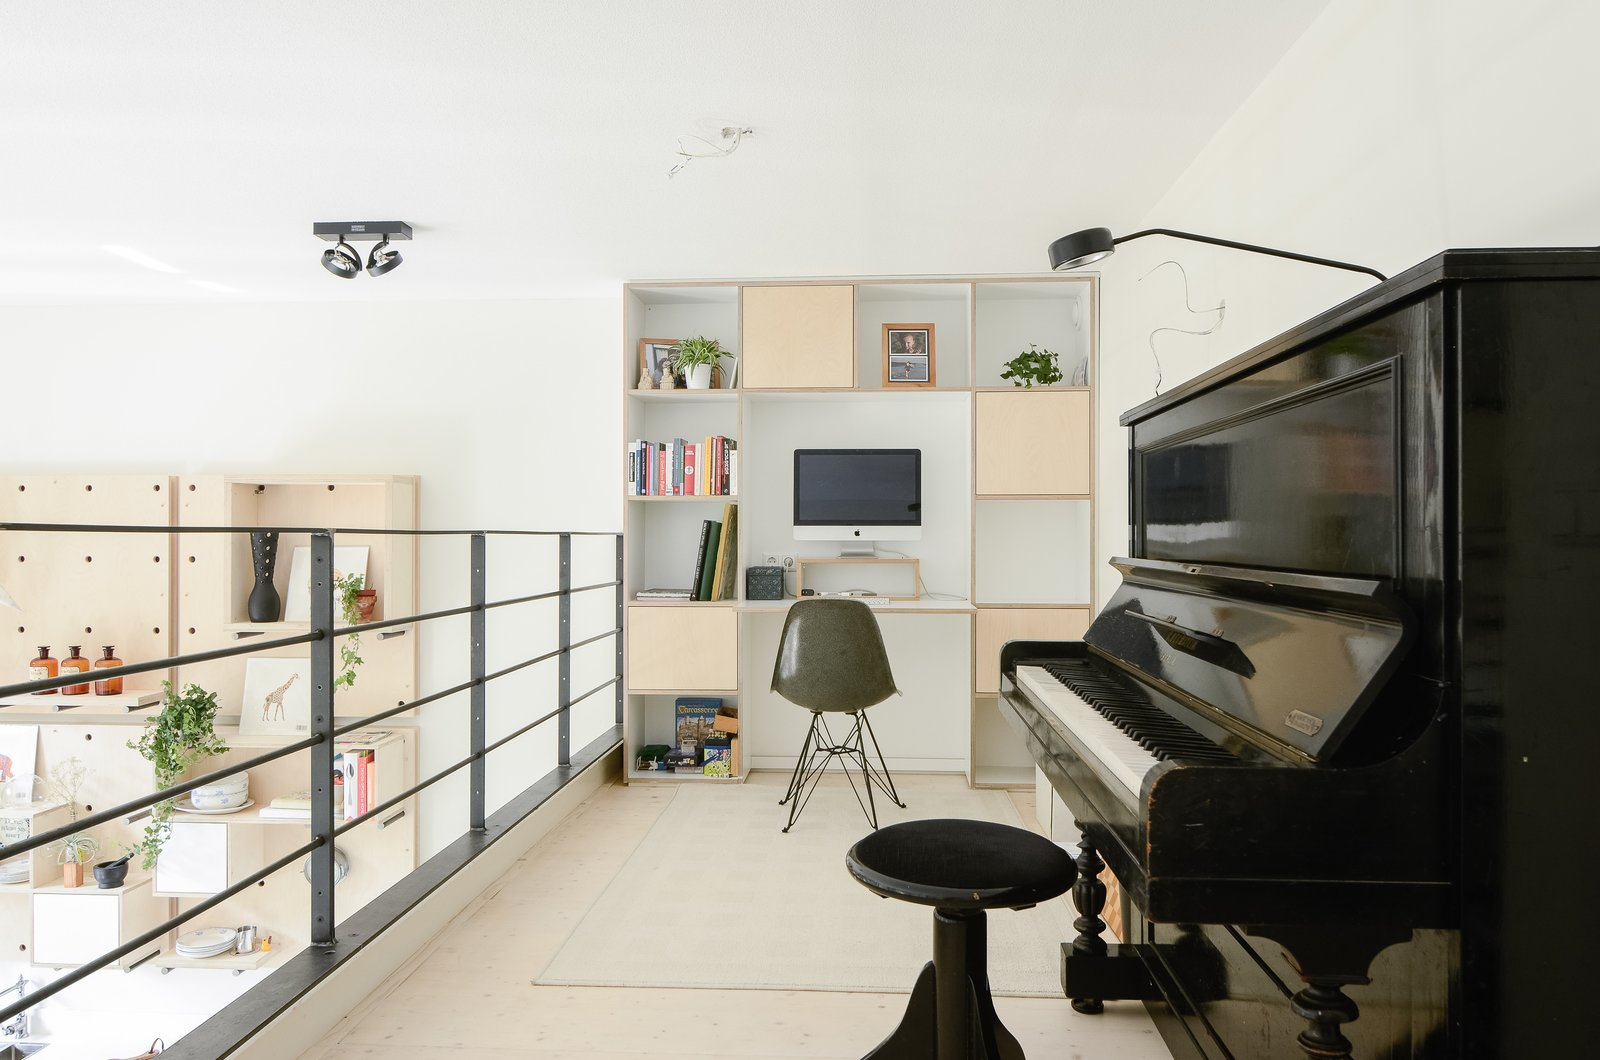 The loft addition afforded space for a home office and music area. The family chose to forego a dedicated office upstairs, instead prioritizing private bedrooms for each of the children. Shelving and a built-in desk anchor the loft's far wall. The Schoolhouse by Sarah Akkoush